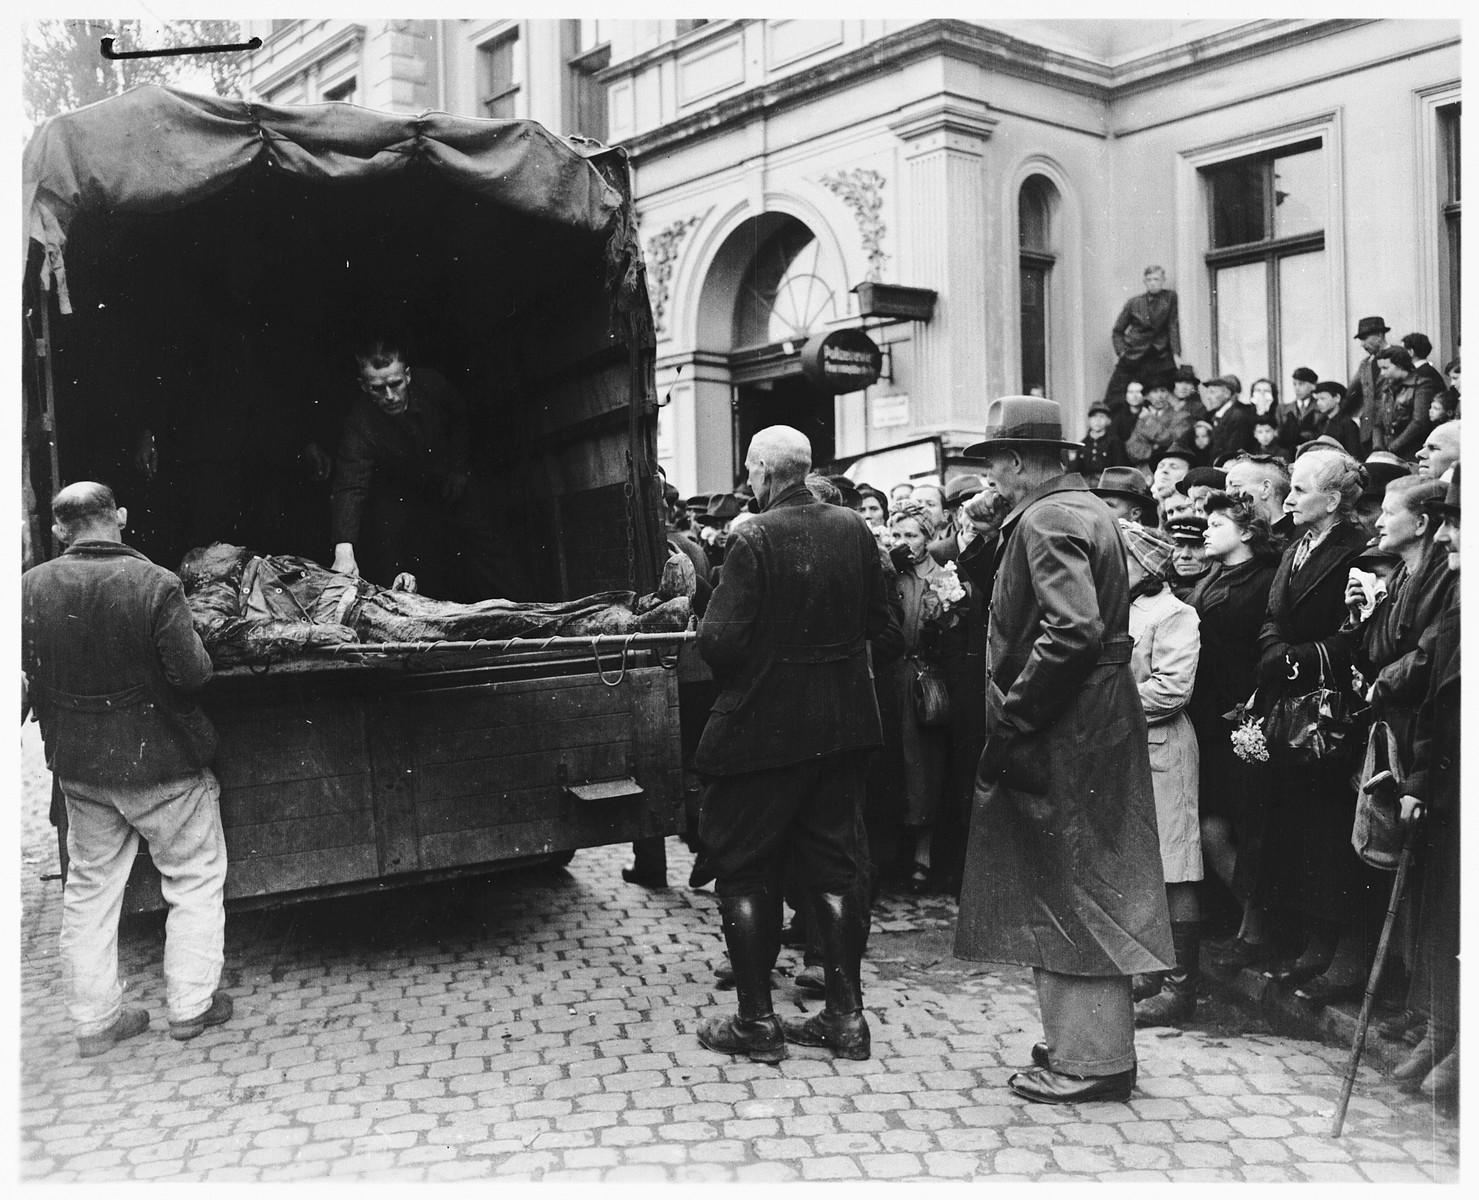 Under the direction of American soldiers, German civilians transport the bodies of 71 political prisoners, exhumed from a mass grave near Solingen-Ohligs, to new graves in front of the city hall.    The victims, most of whom were taken from Luettringhausen prison, were shot and buried by the Gestapo following orders to eliminate all Reich enemies just before the end of the war.